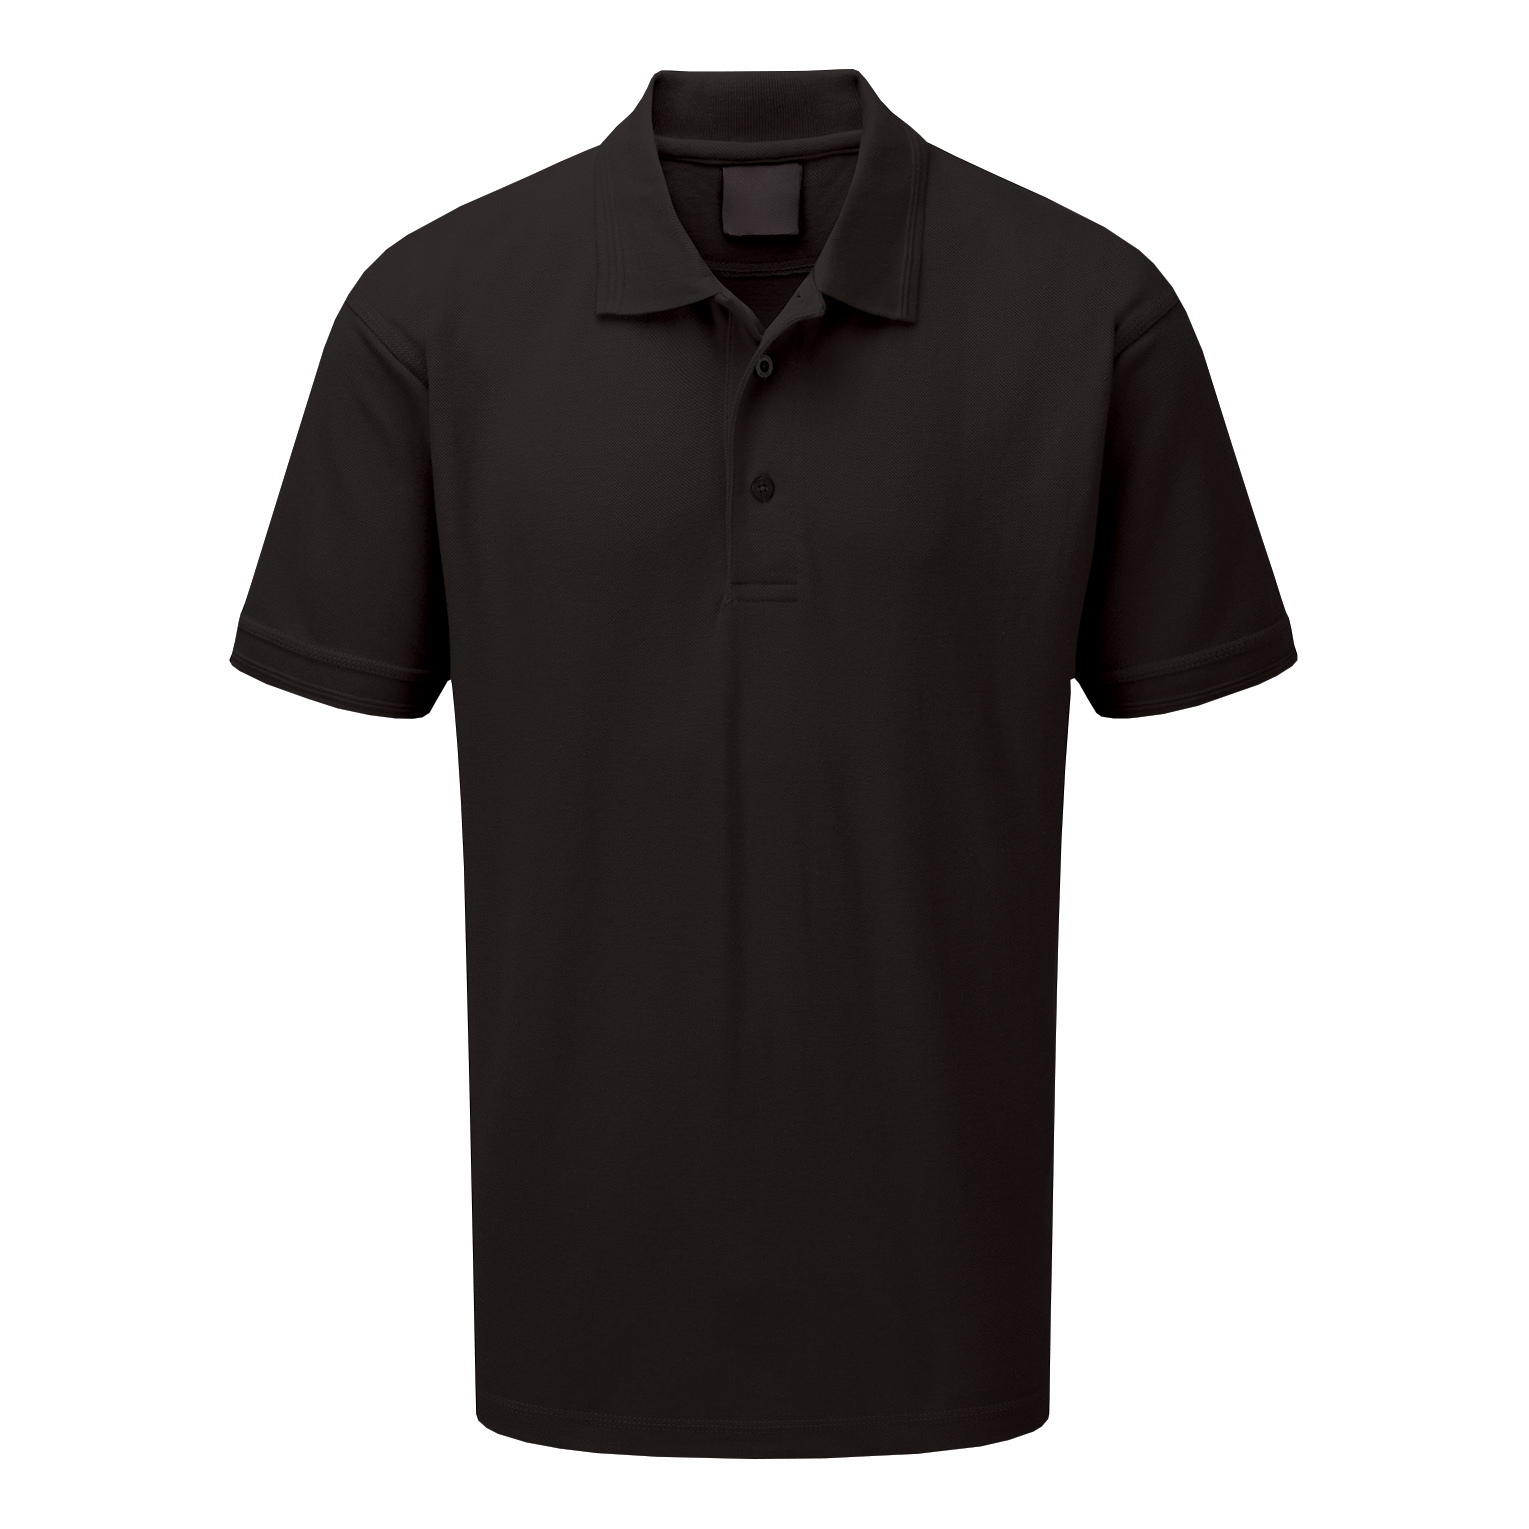 Click Workwear Polo Shirt Polycotton 200gsm XL Black Ref CLPKSBLXL *1-3 Days Lead Time*